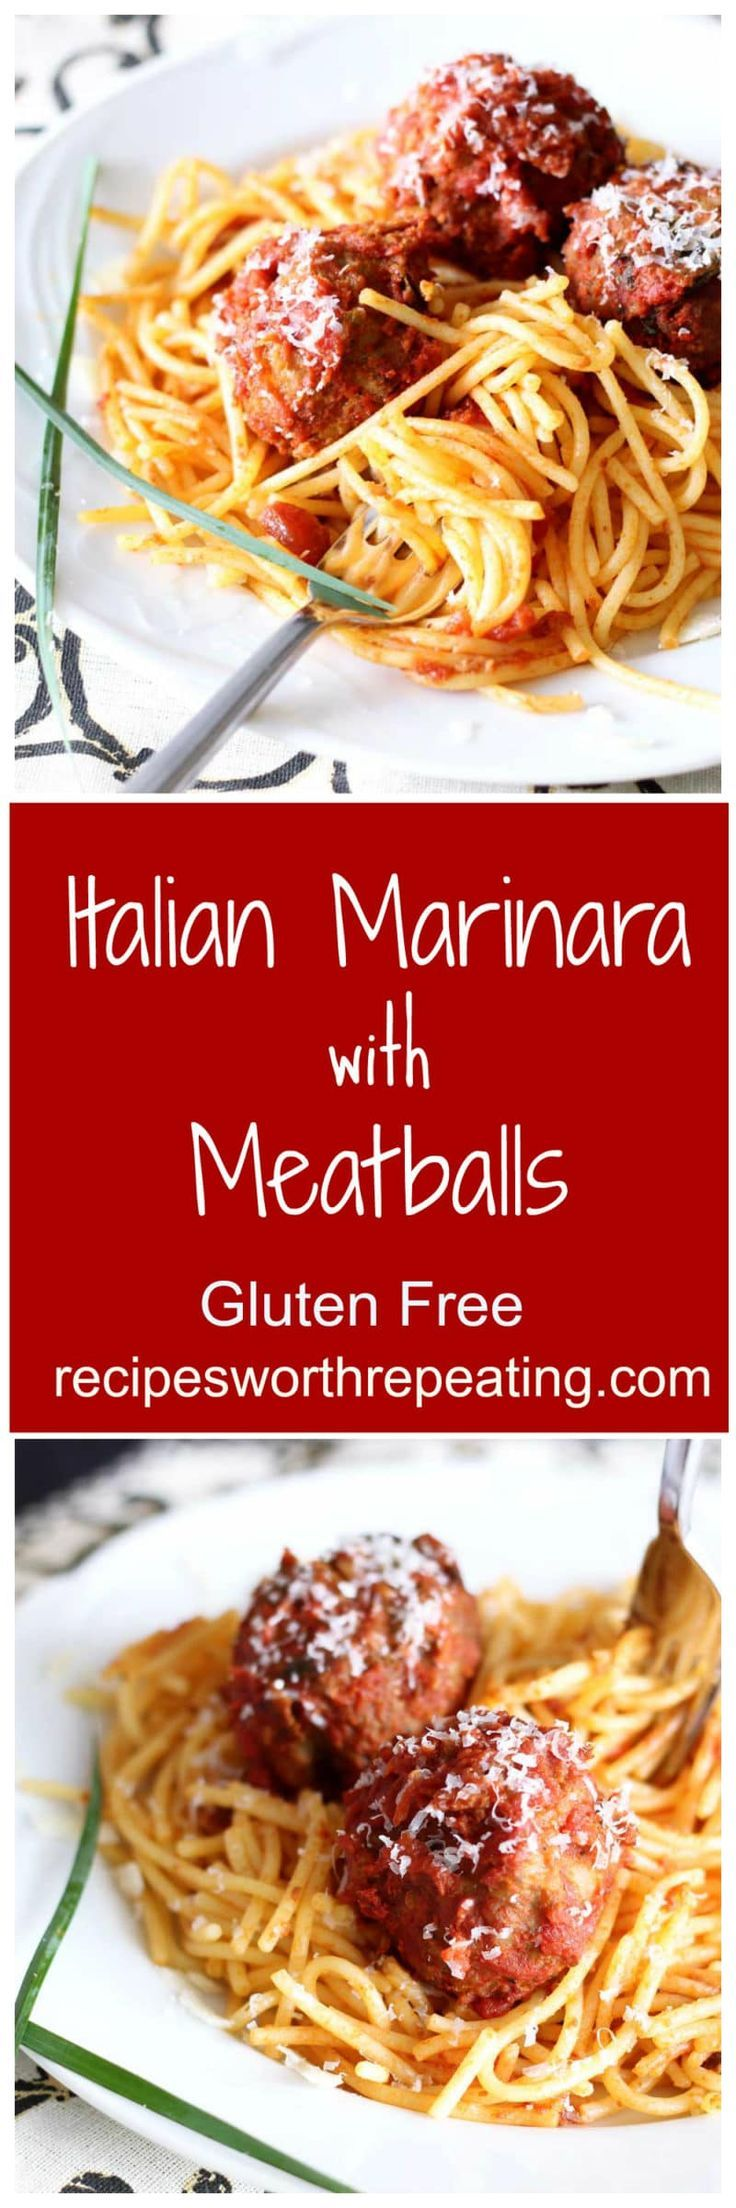 There's nothing better than a homemade authentic Italian Marinara with Meatball dish that has been passed down for decades!. This pasta recipe features a sauce made with fresh basil and oregano mixed with crushed tomatoes and classic Italian herbs and spices. The meatballs have fresh basil and oregano mixed in and are big and full of flavor with every bite!